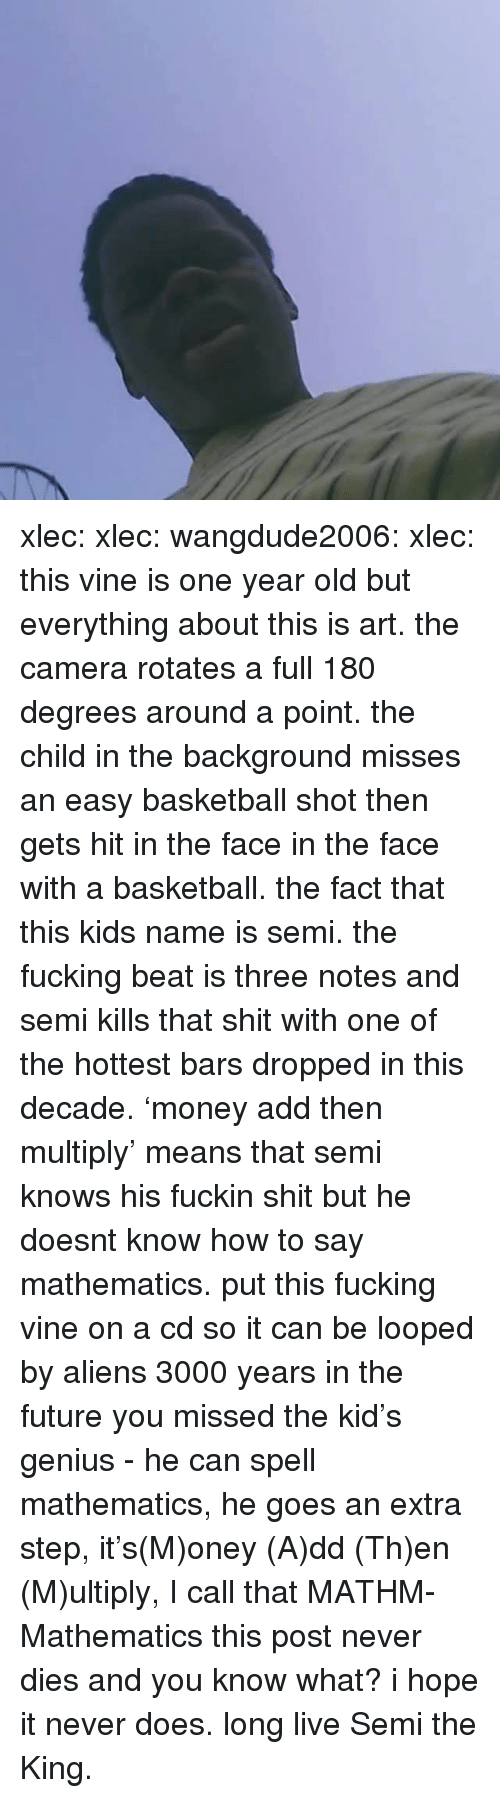 Basketball, Fucking, and Future: xlec:  xlec:  wangdude2006:  xlec:  this vine is one year old but everything about this is art. the camera rotates a full 180 degrees around a point. the child in the background misses an easy basketball shot then gets hit in the face in the face with a basketball. the fact that this kids name is semi. the fucking beat is three notes and semi kills that shit with one of the hottest bars dropped in this decade. 'money add then multiply' means that semi knows his fuckin shit but he doesnt know how to say mathematics. put this fucking vine on a cd so it can be looped by aliens 3000 years in the future  you missed the kid's genius - he can spell mathematics, he goes an extra step, it's(M)oney (A)dd (Th)en (M)ultiply, I call that MATHM-Mathematics    this post never dies and you know what? i hope it never does. long live Semi the King.